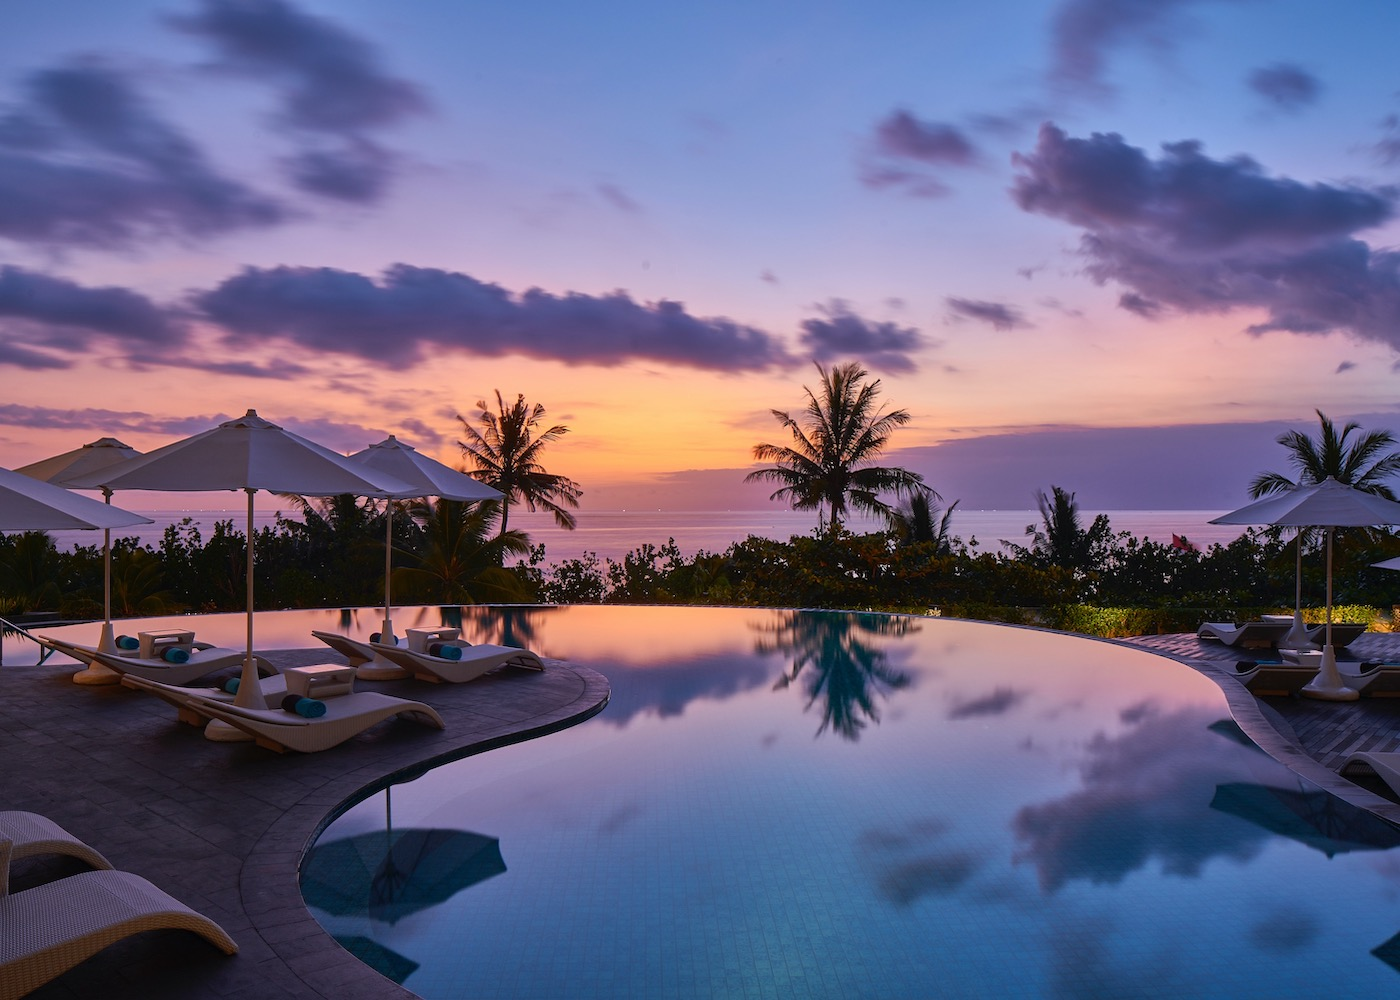 This hotel package at Sheraton Bali Kuta Resort is upping your island vacay with special perks & experiences!